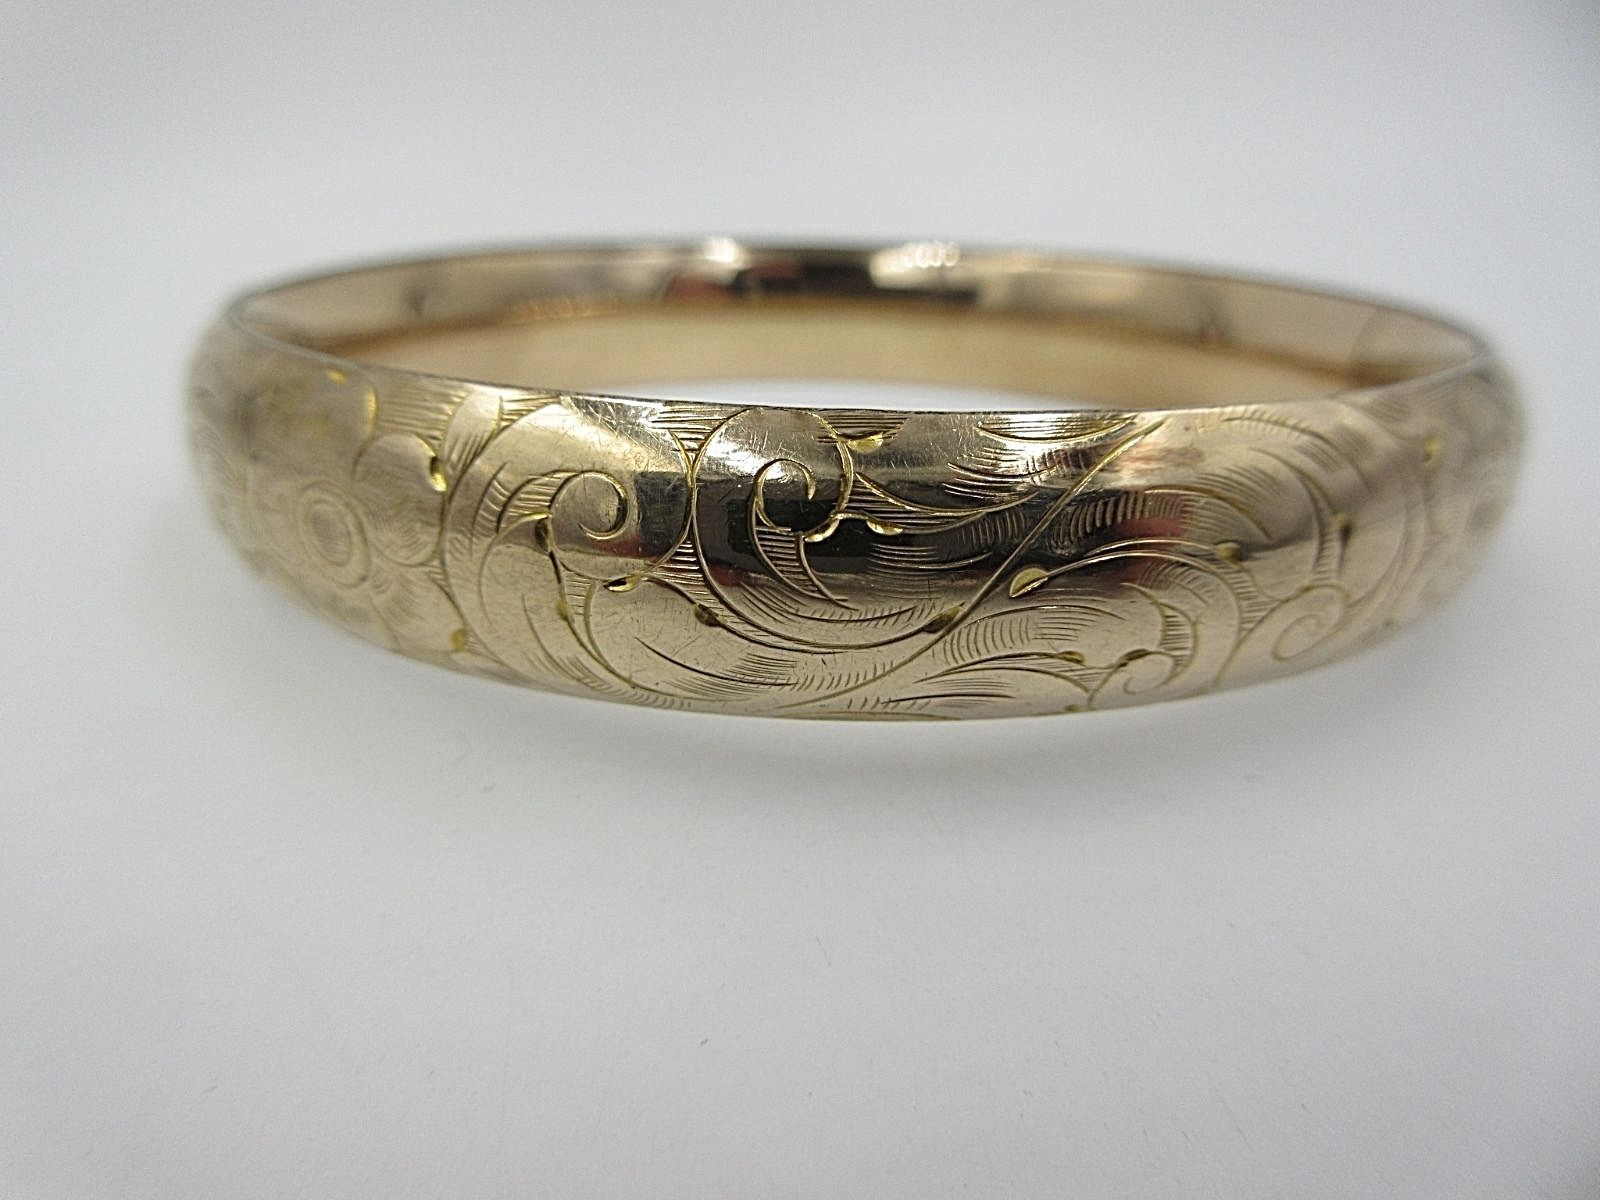 A.A.G. 1/10 Gold Victorian Etched Bangle Bracelet AA Green & Co Hinged